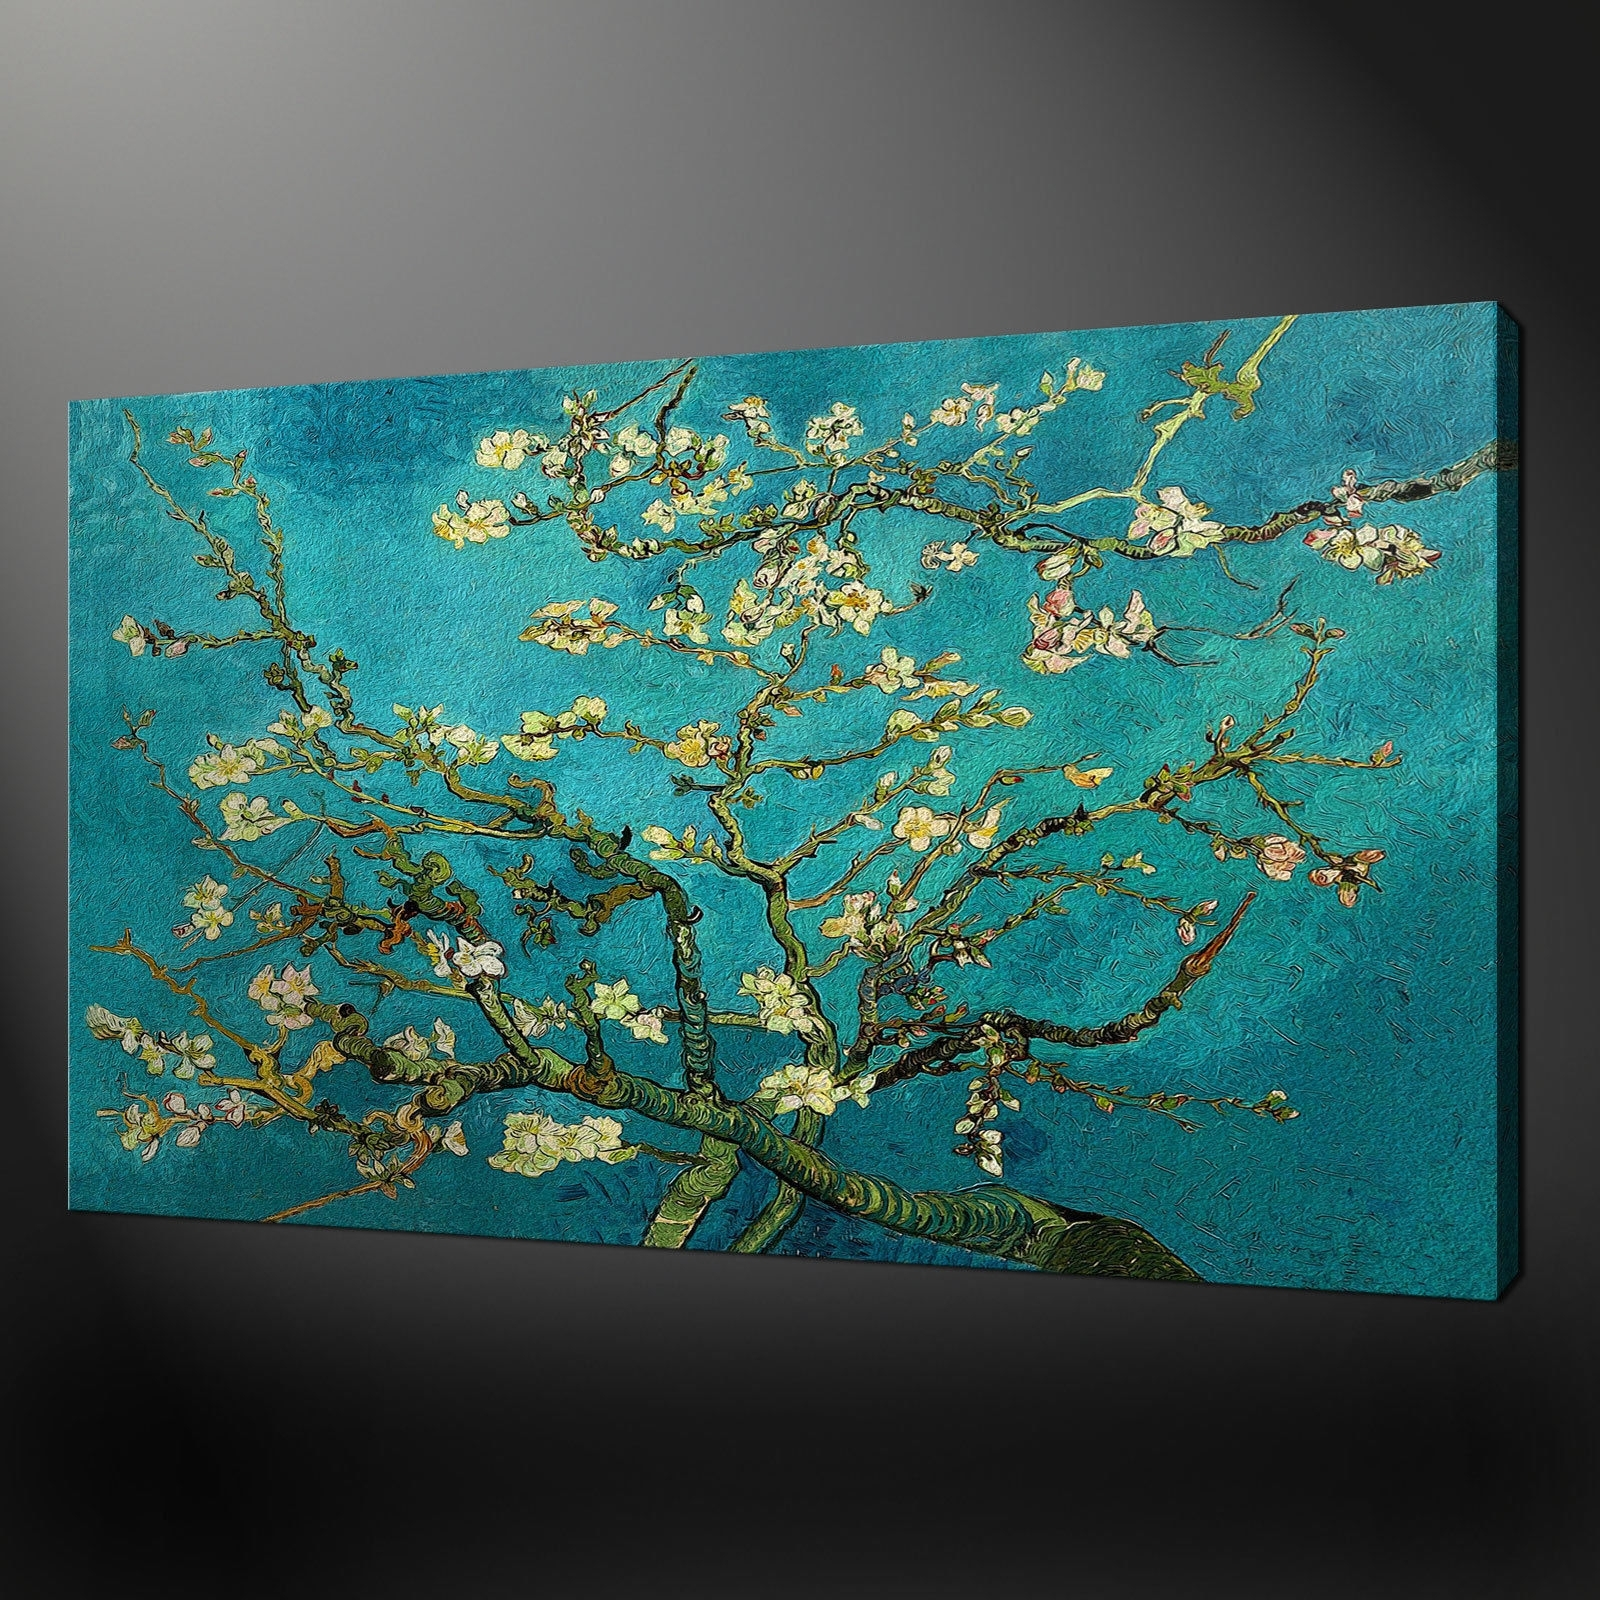 Almond Tree Van Gogh Regarding To Large Canvas Teal Wall Art Simple with regard to Teal Wall Art (Image 2 of 20)